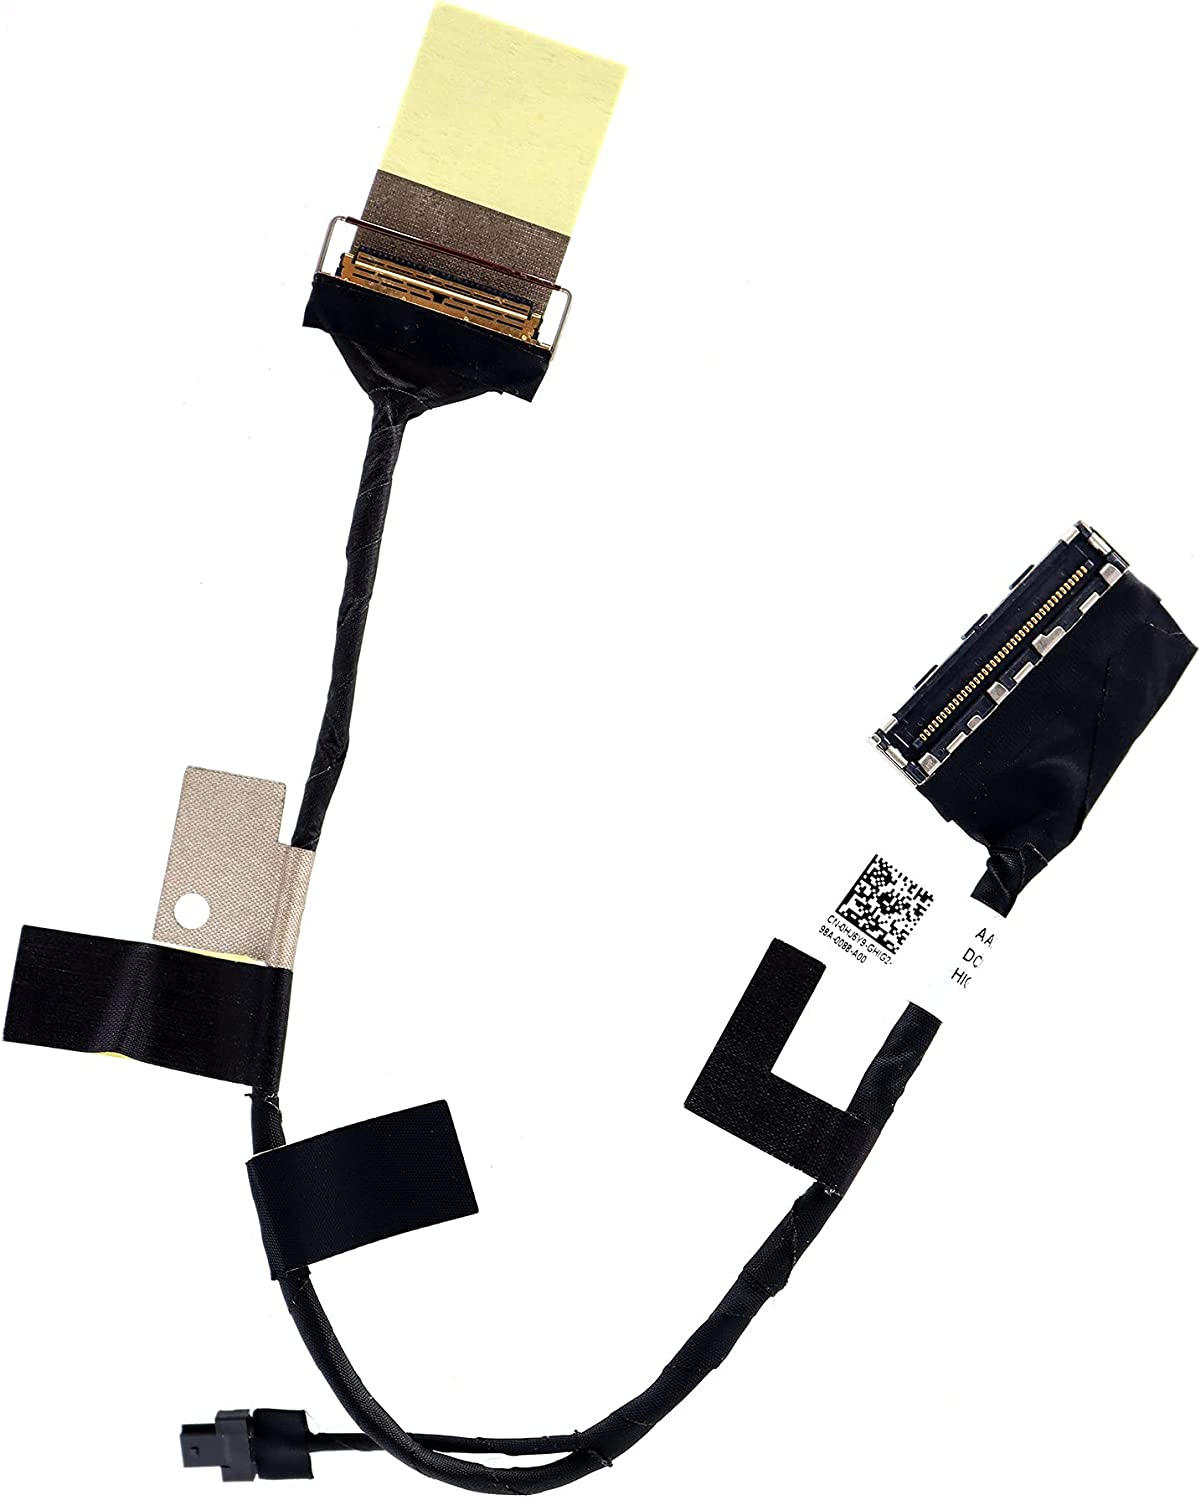 Deal4GO FHD LCD Video Cable AAZ80 Lvds eDP Cable HJ6Y9 0HJ6Y9 DC02C00BV10 for Dell XPS 13 9360 9350 P54G